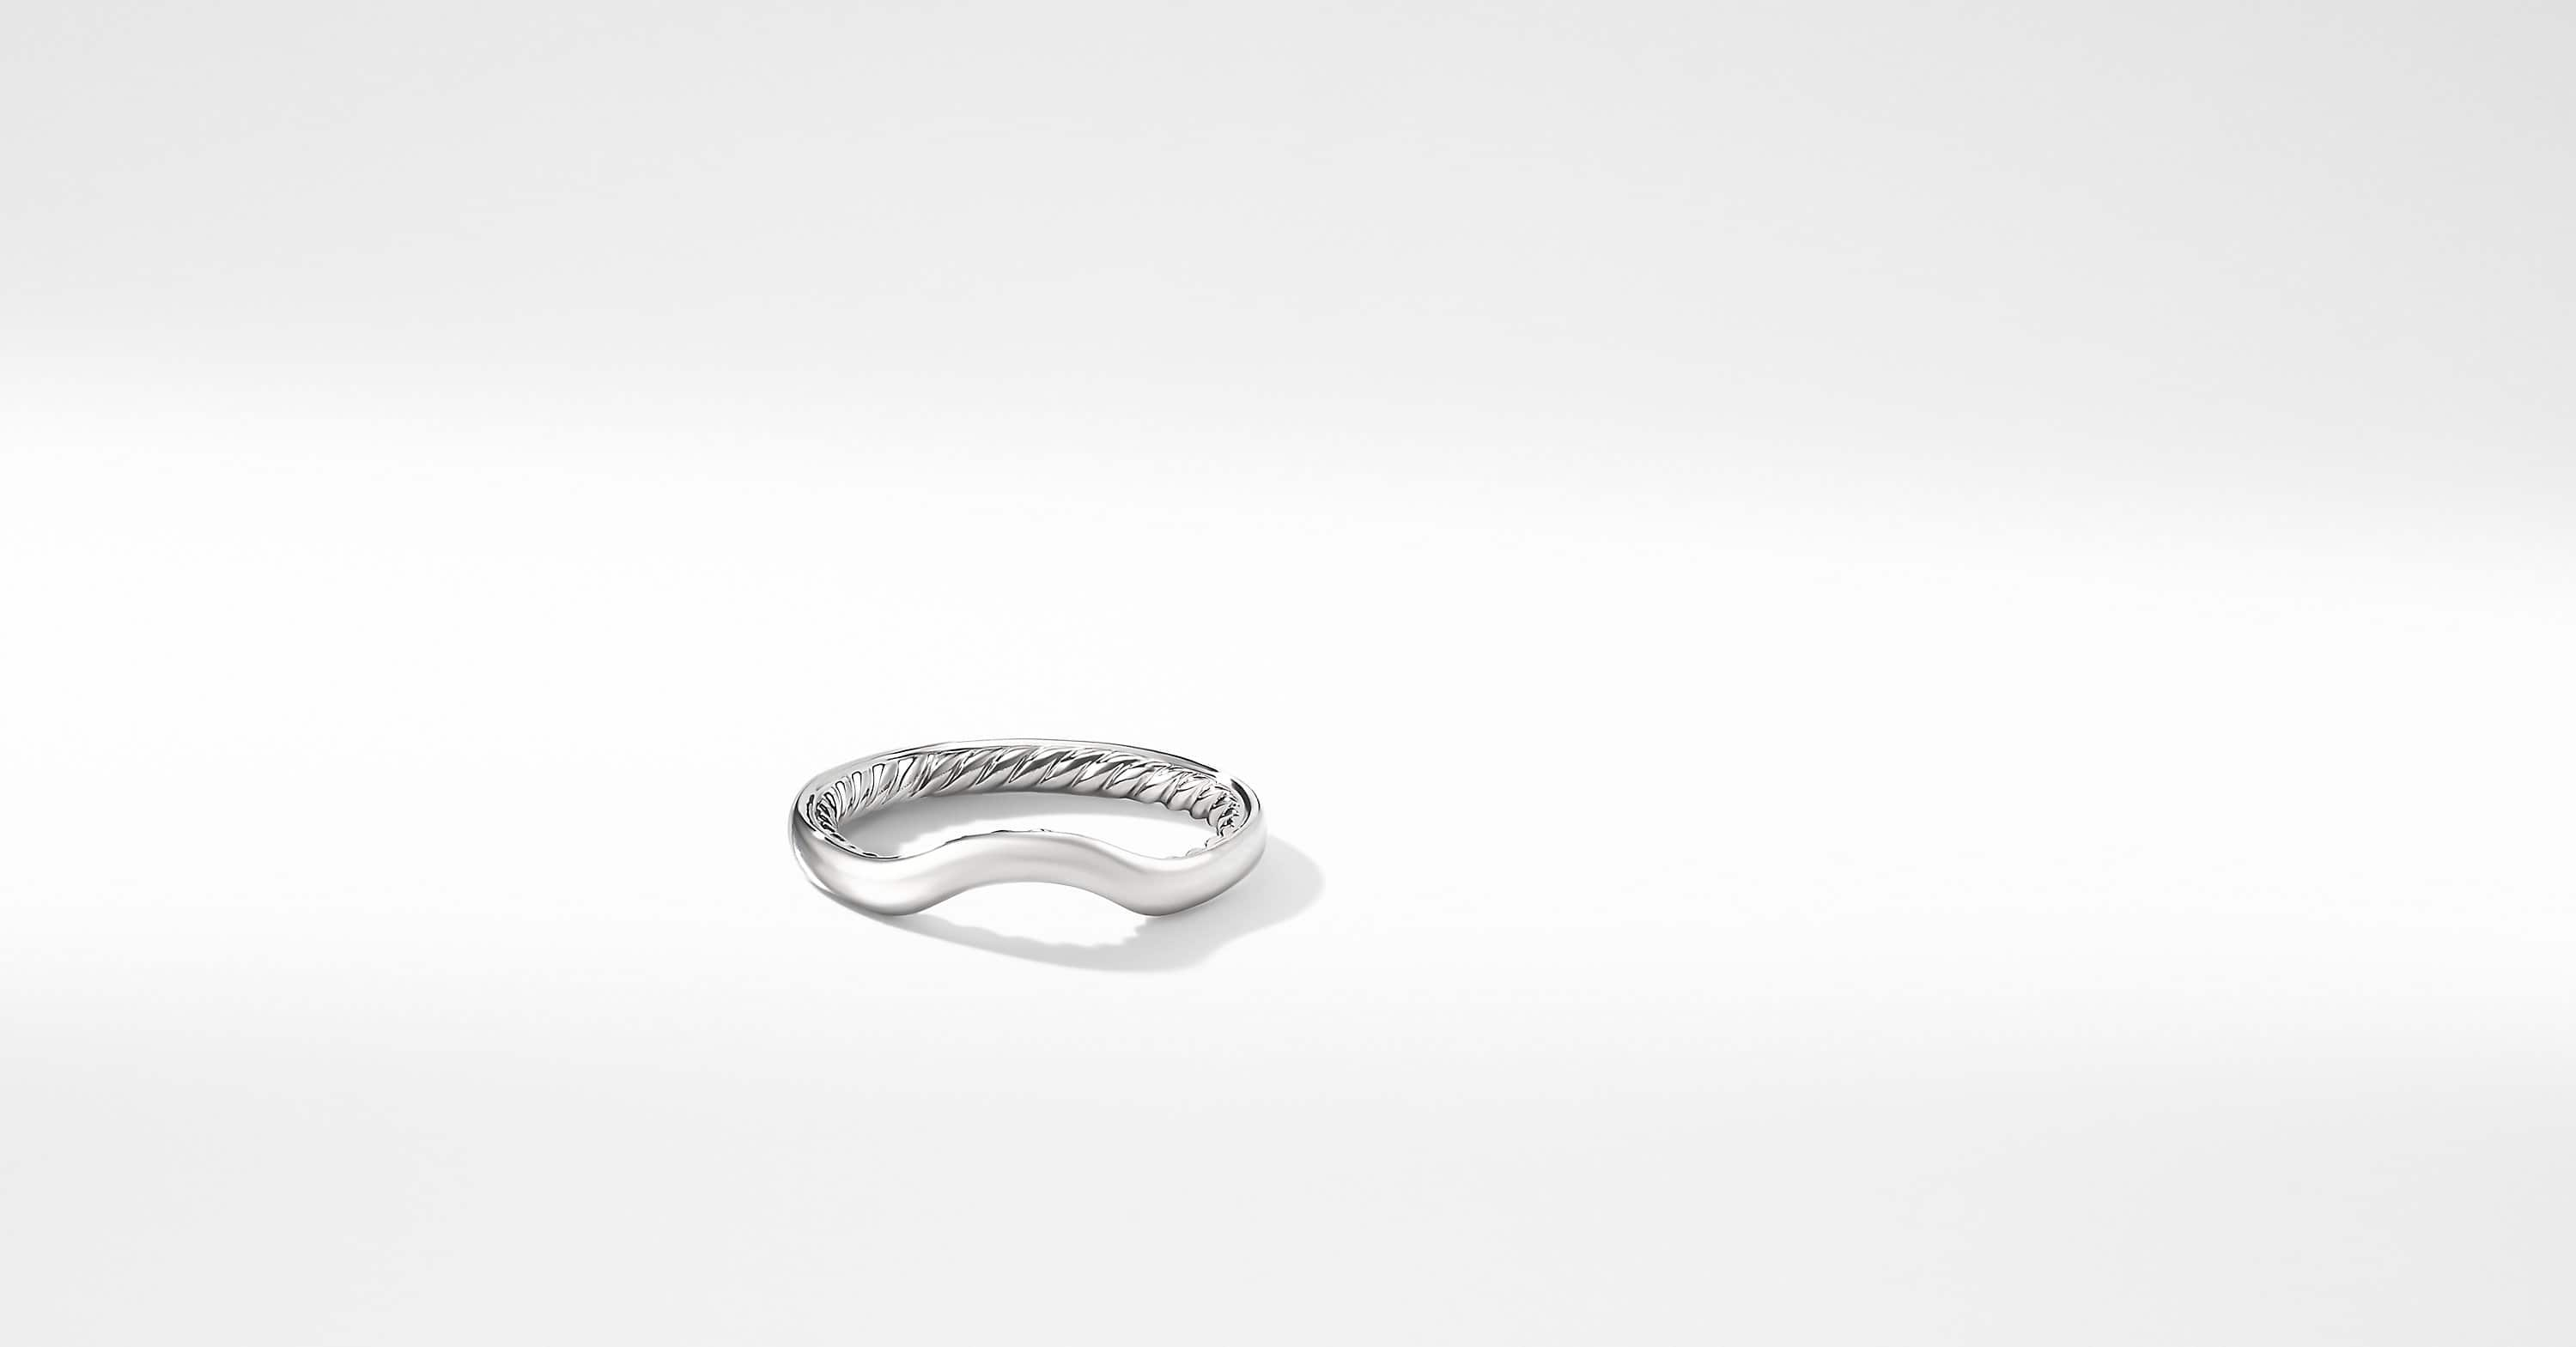 DY Capri Nesting Wedding Band in Platinum, 2.3mm